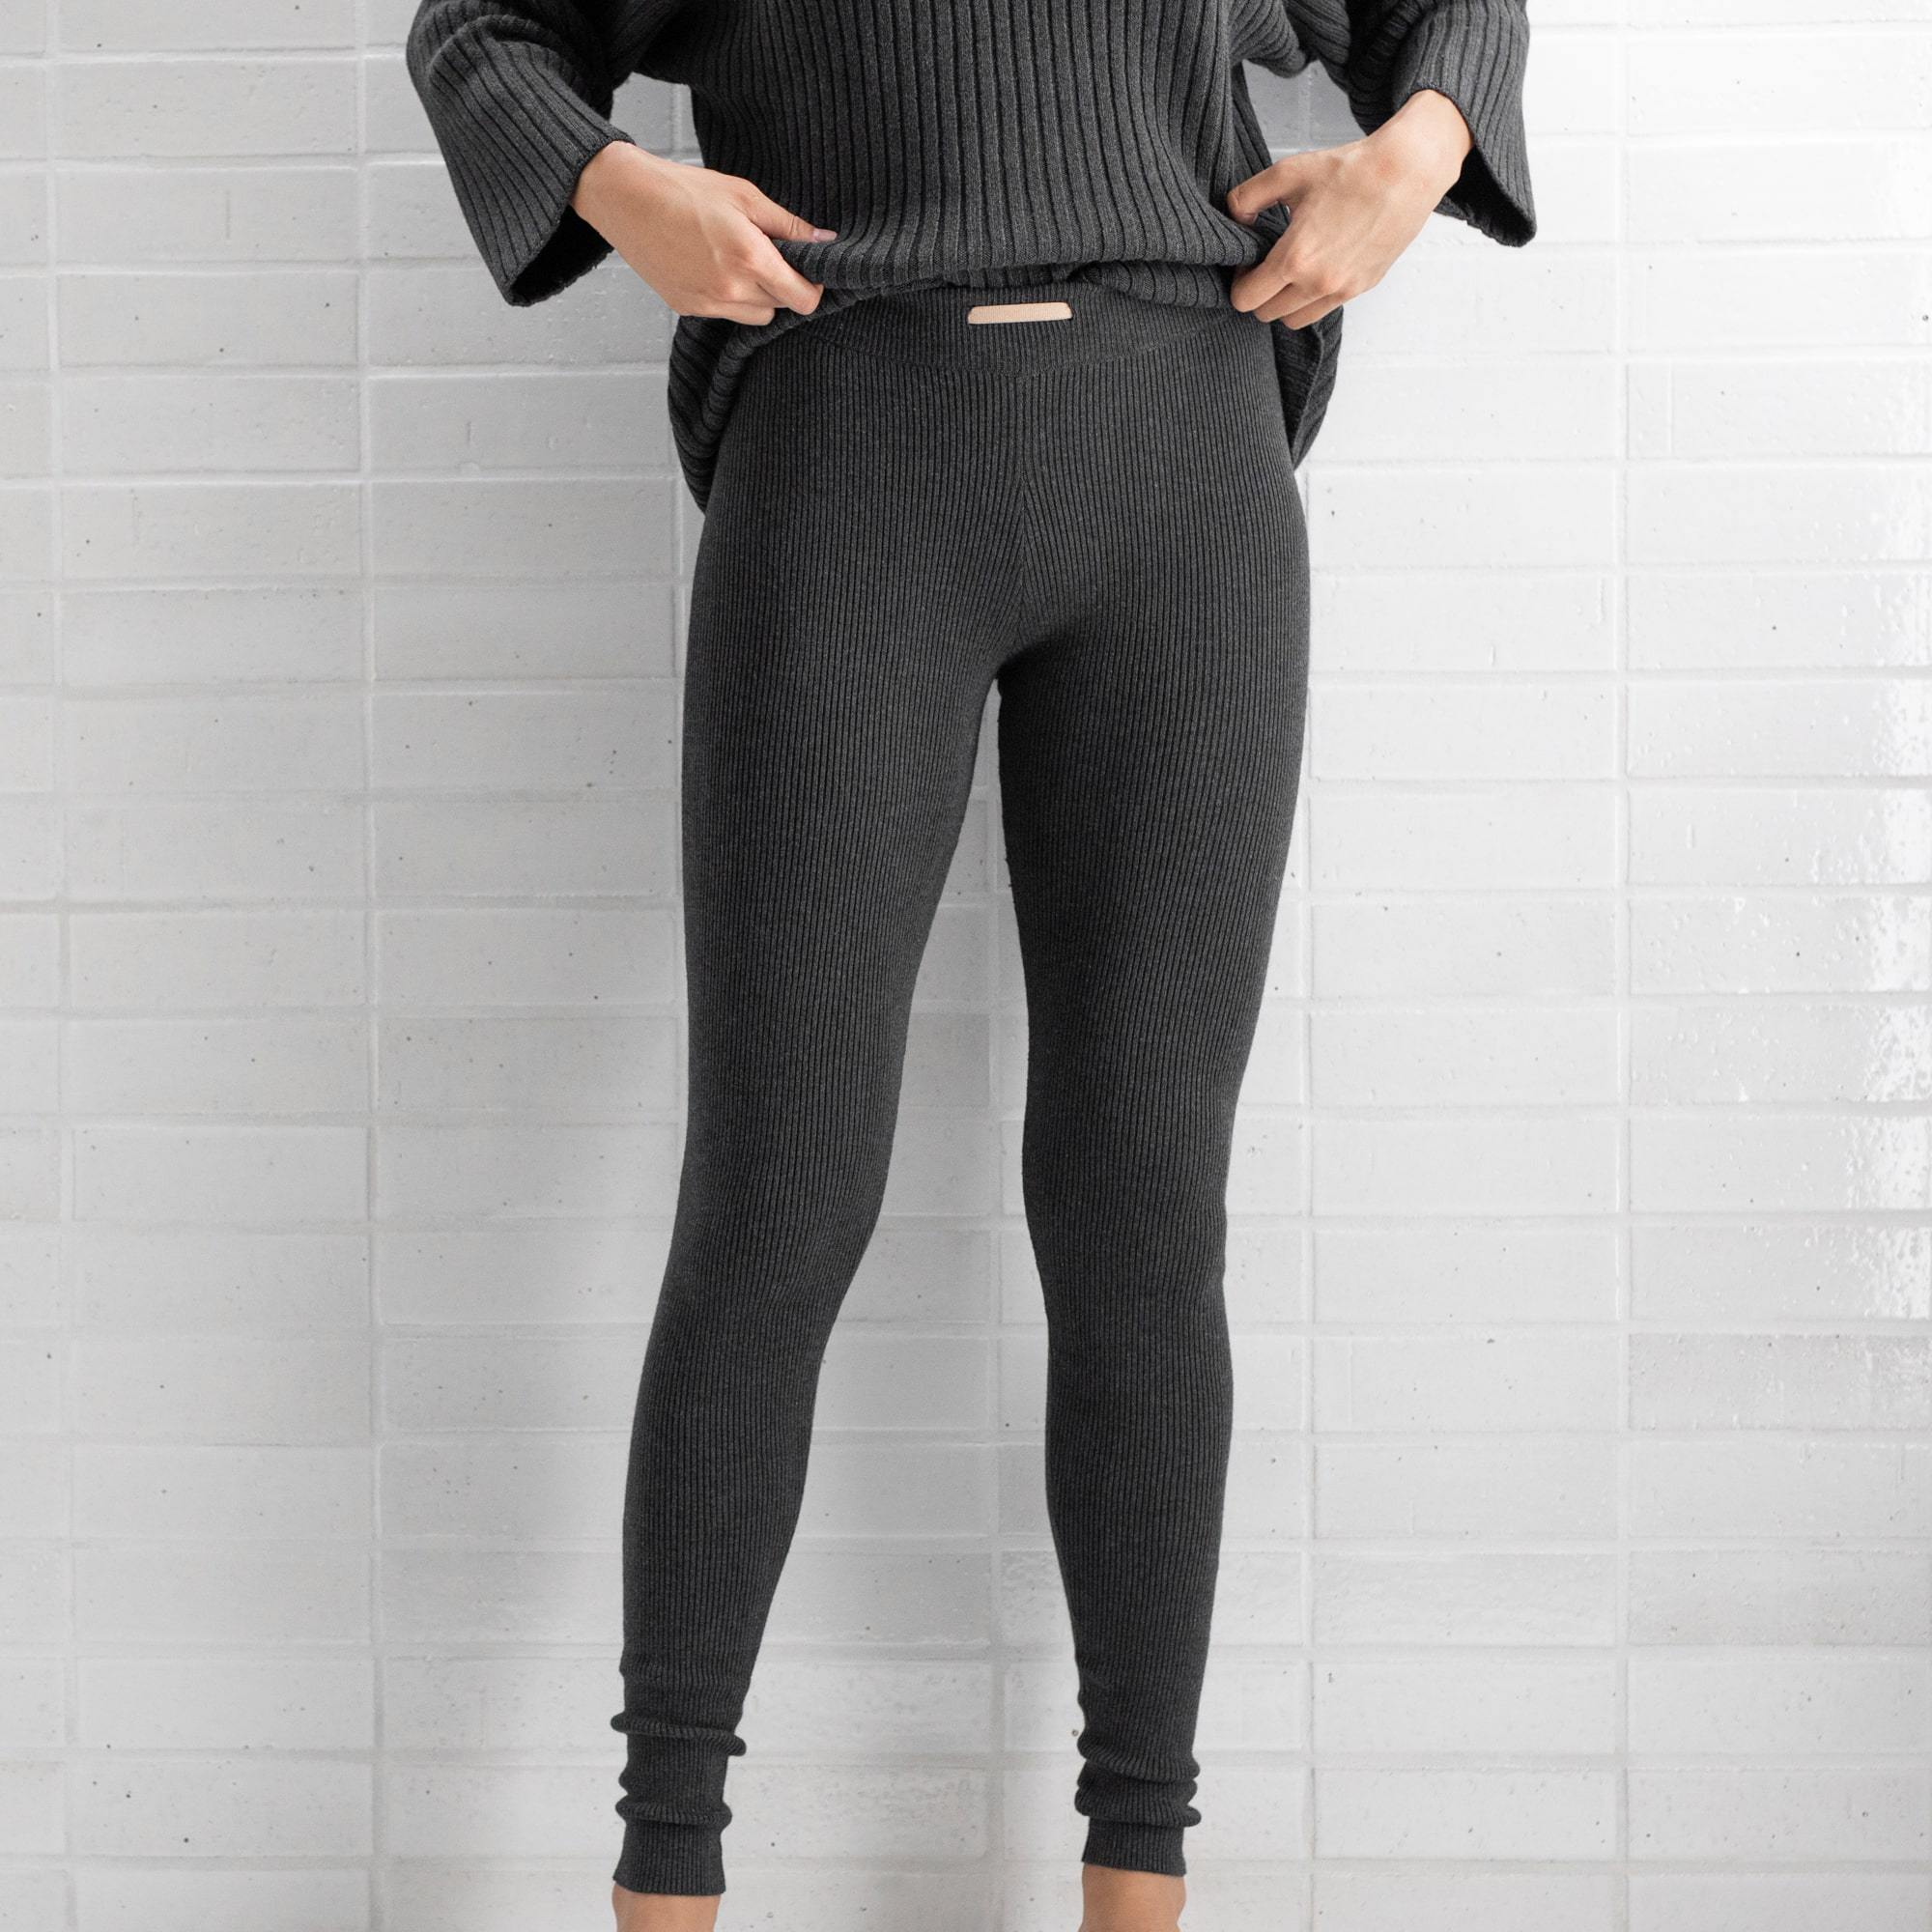 Lunya Sleepwear Cozy Pima Alpaca Ribbed Legging - #Heather Charcoal